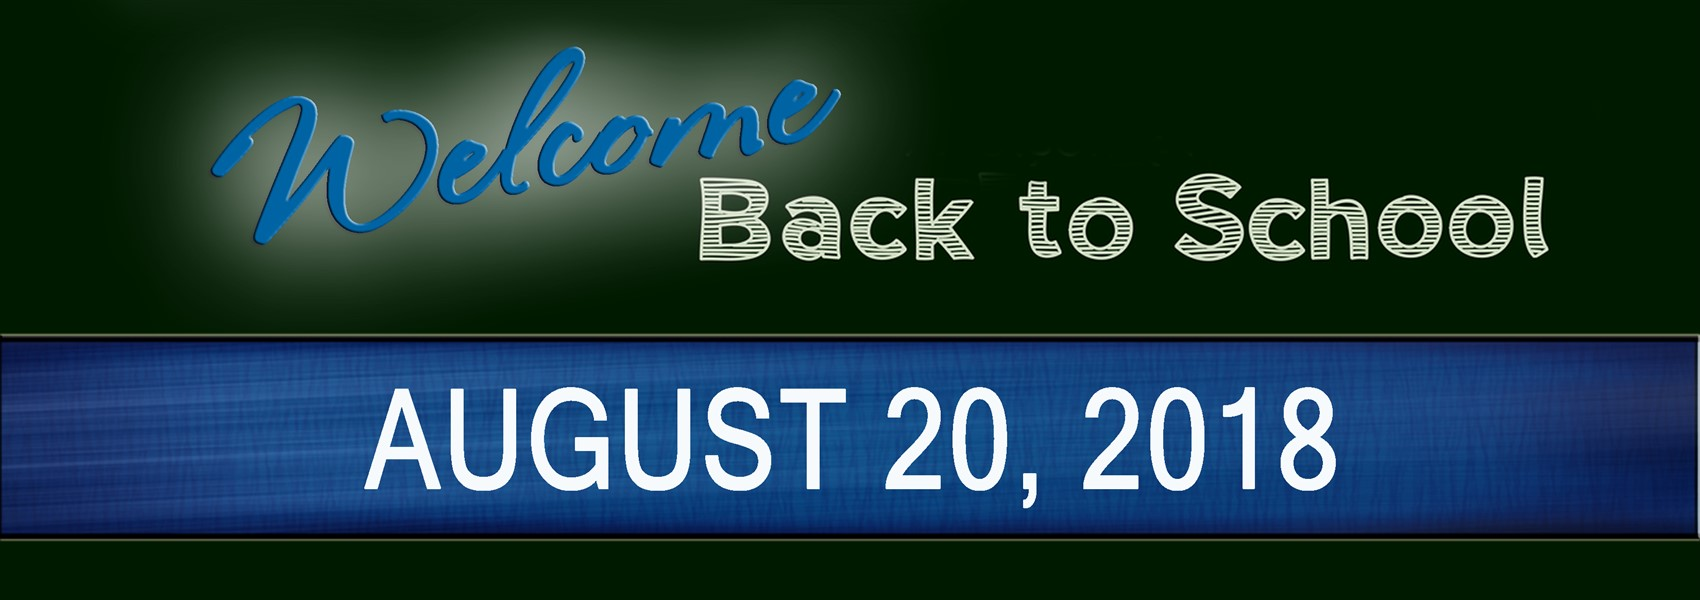 WELCOME BACK TO SCHOOL ON AUGUST 20 2018